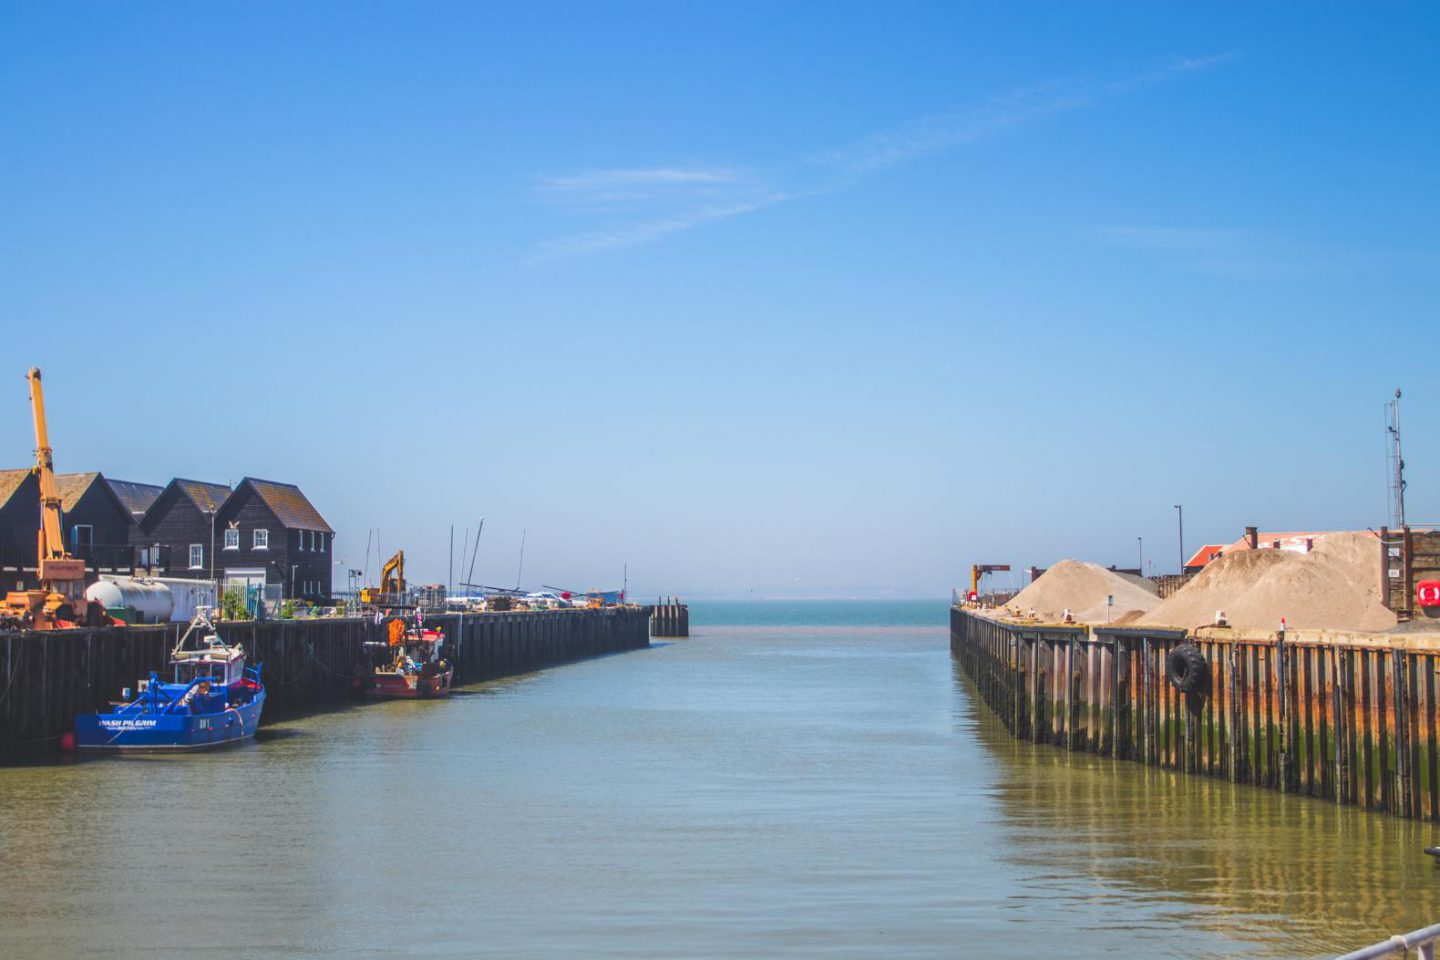 Days out in the UK: Whitstable, England's Oyster Bay, the Pearl of Kent